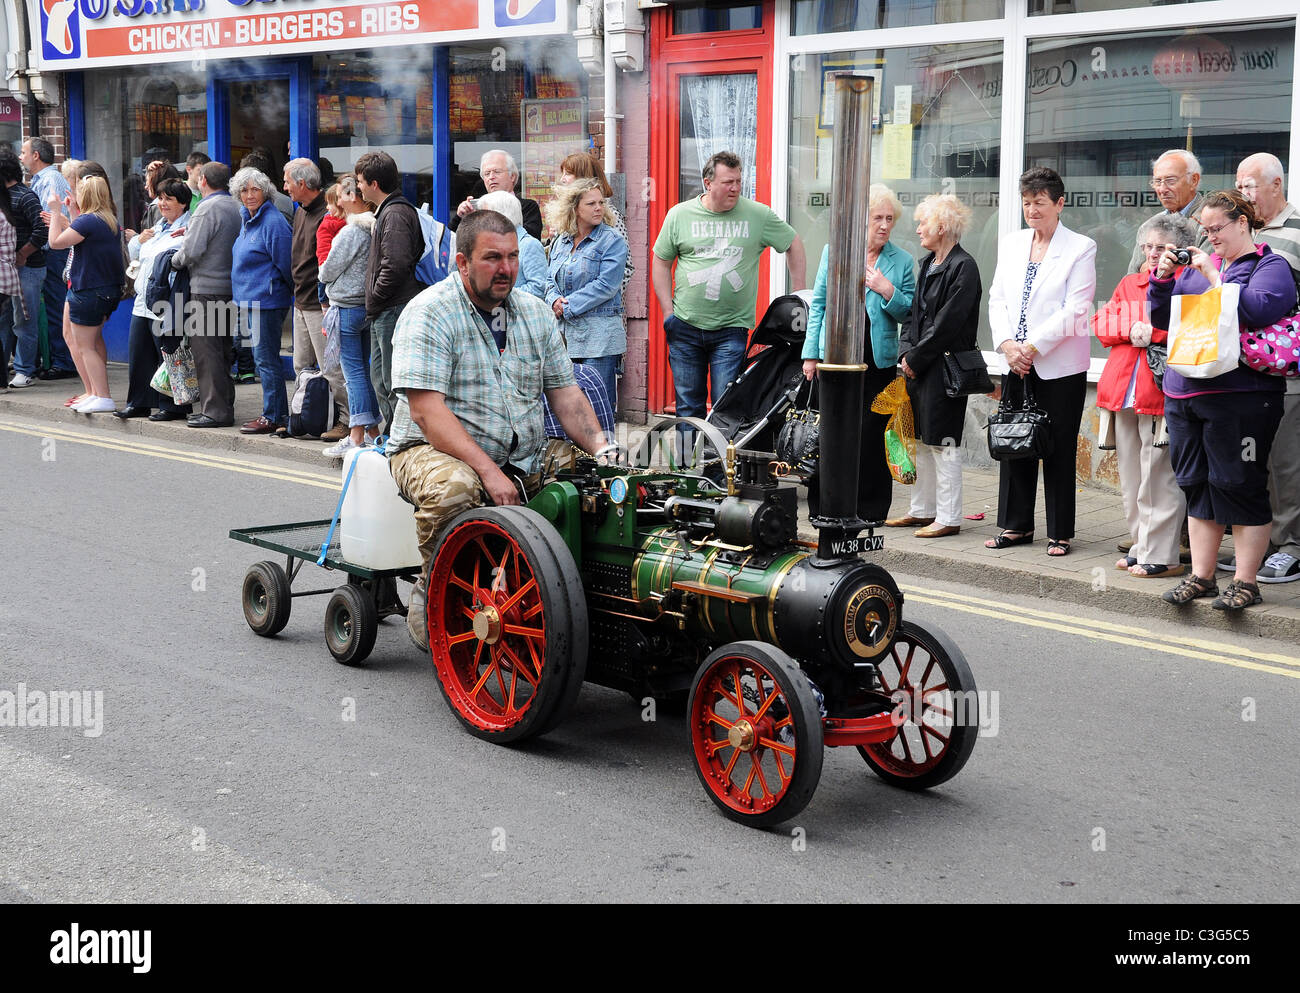 A scale model steam engine in the annual Trevithick day parade in Camborne, Cornwall, UK - Stock Image